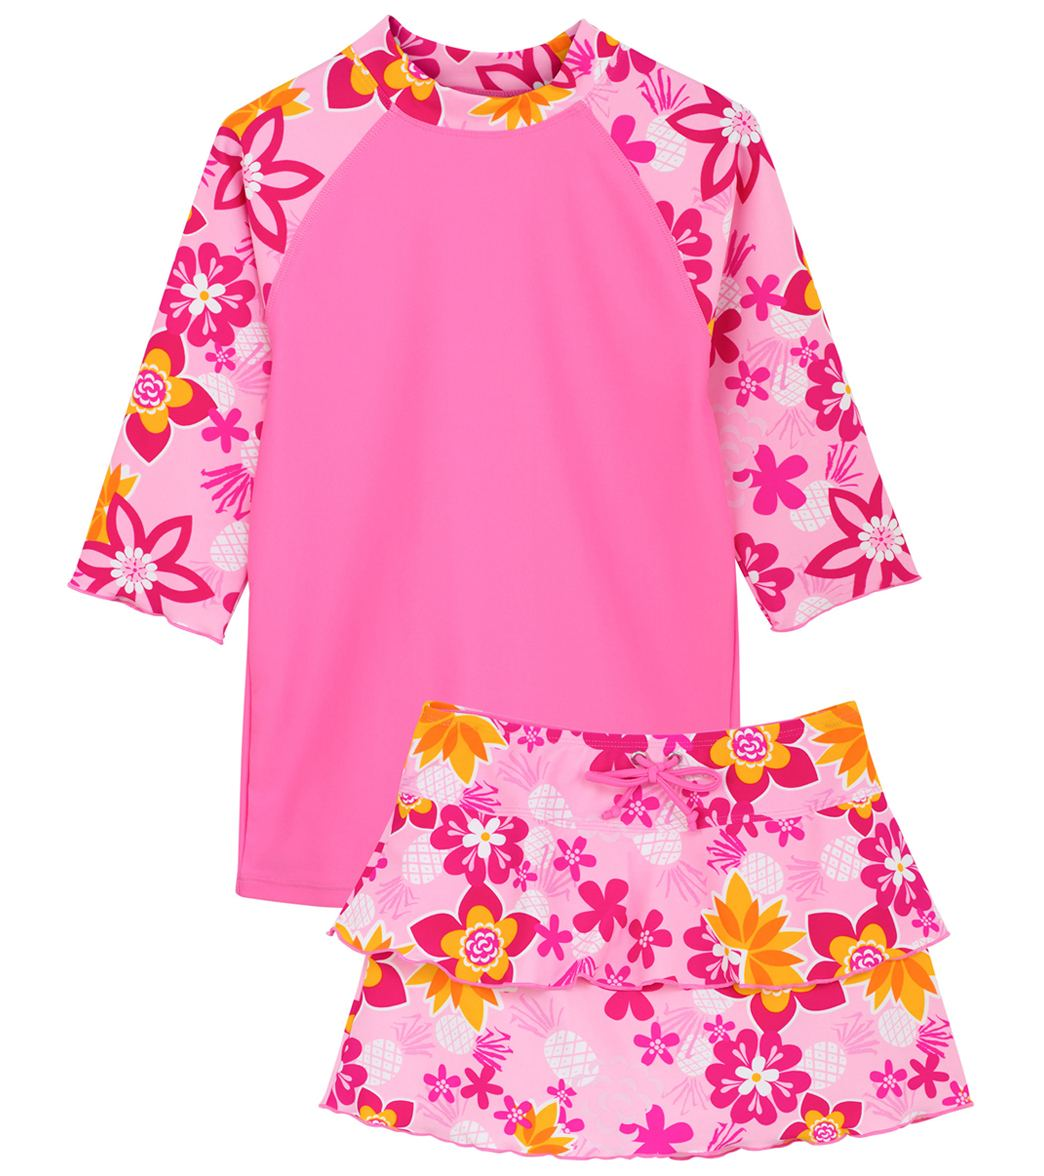 14a48d6840 Tuga Girls' Tropical Punch Tropical Breeze 3 Piece Rash Guard Set (Toddler,  Little Kid, Big Kid) at SwimOutlet.com - Free Shipping